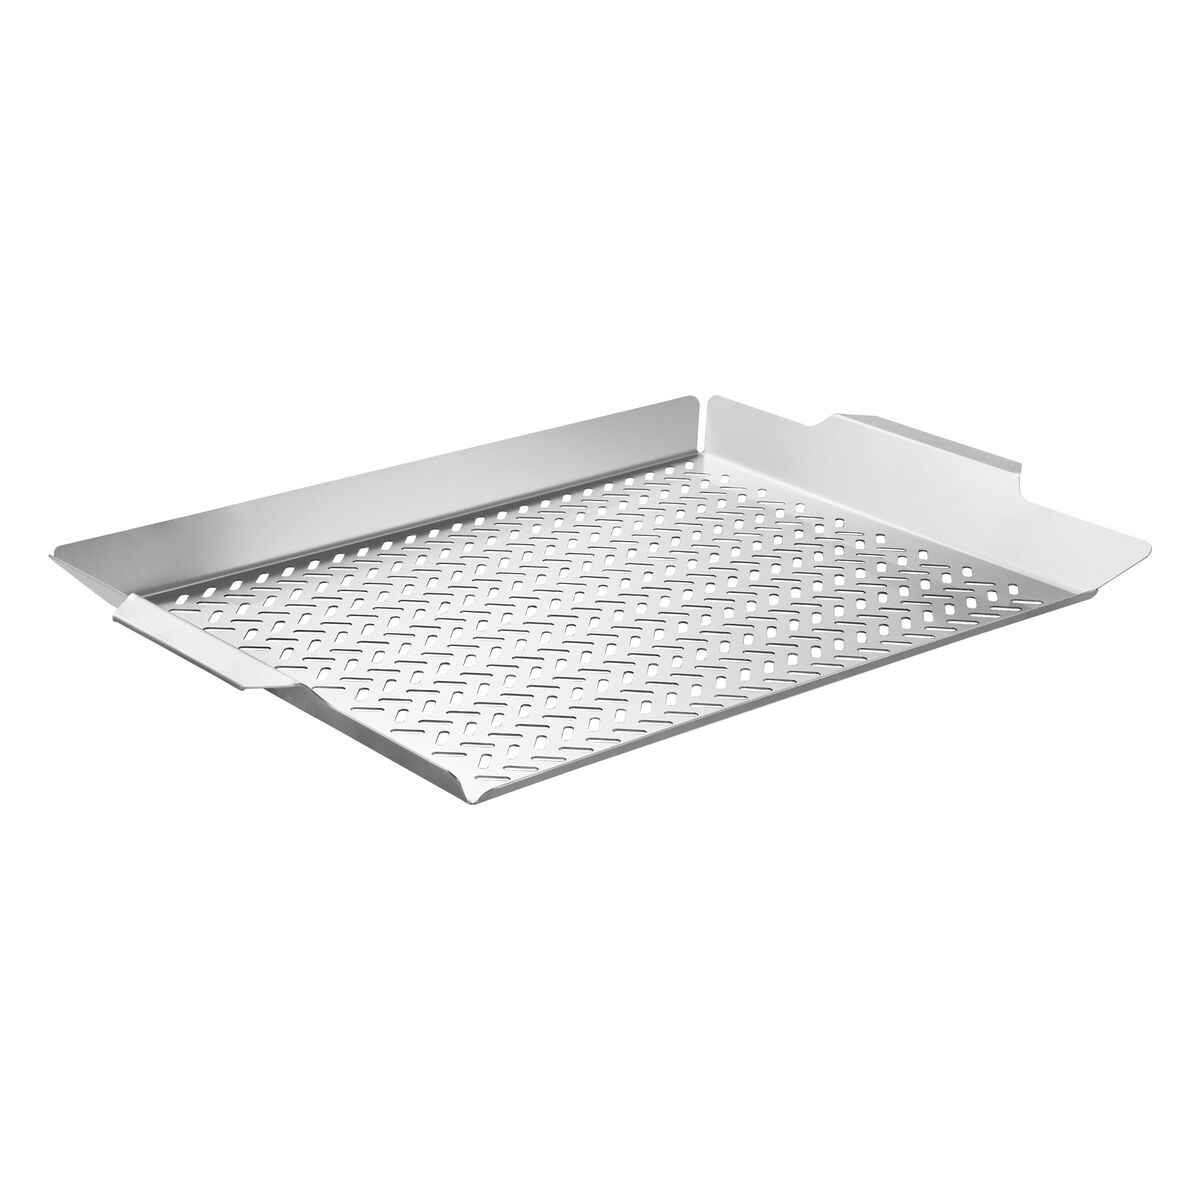 Tramontina Cosmos stainless steel fish grilling basket, 48 x 32 cm